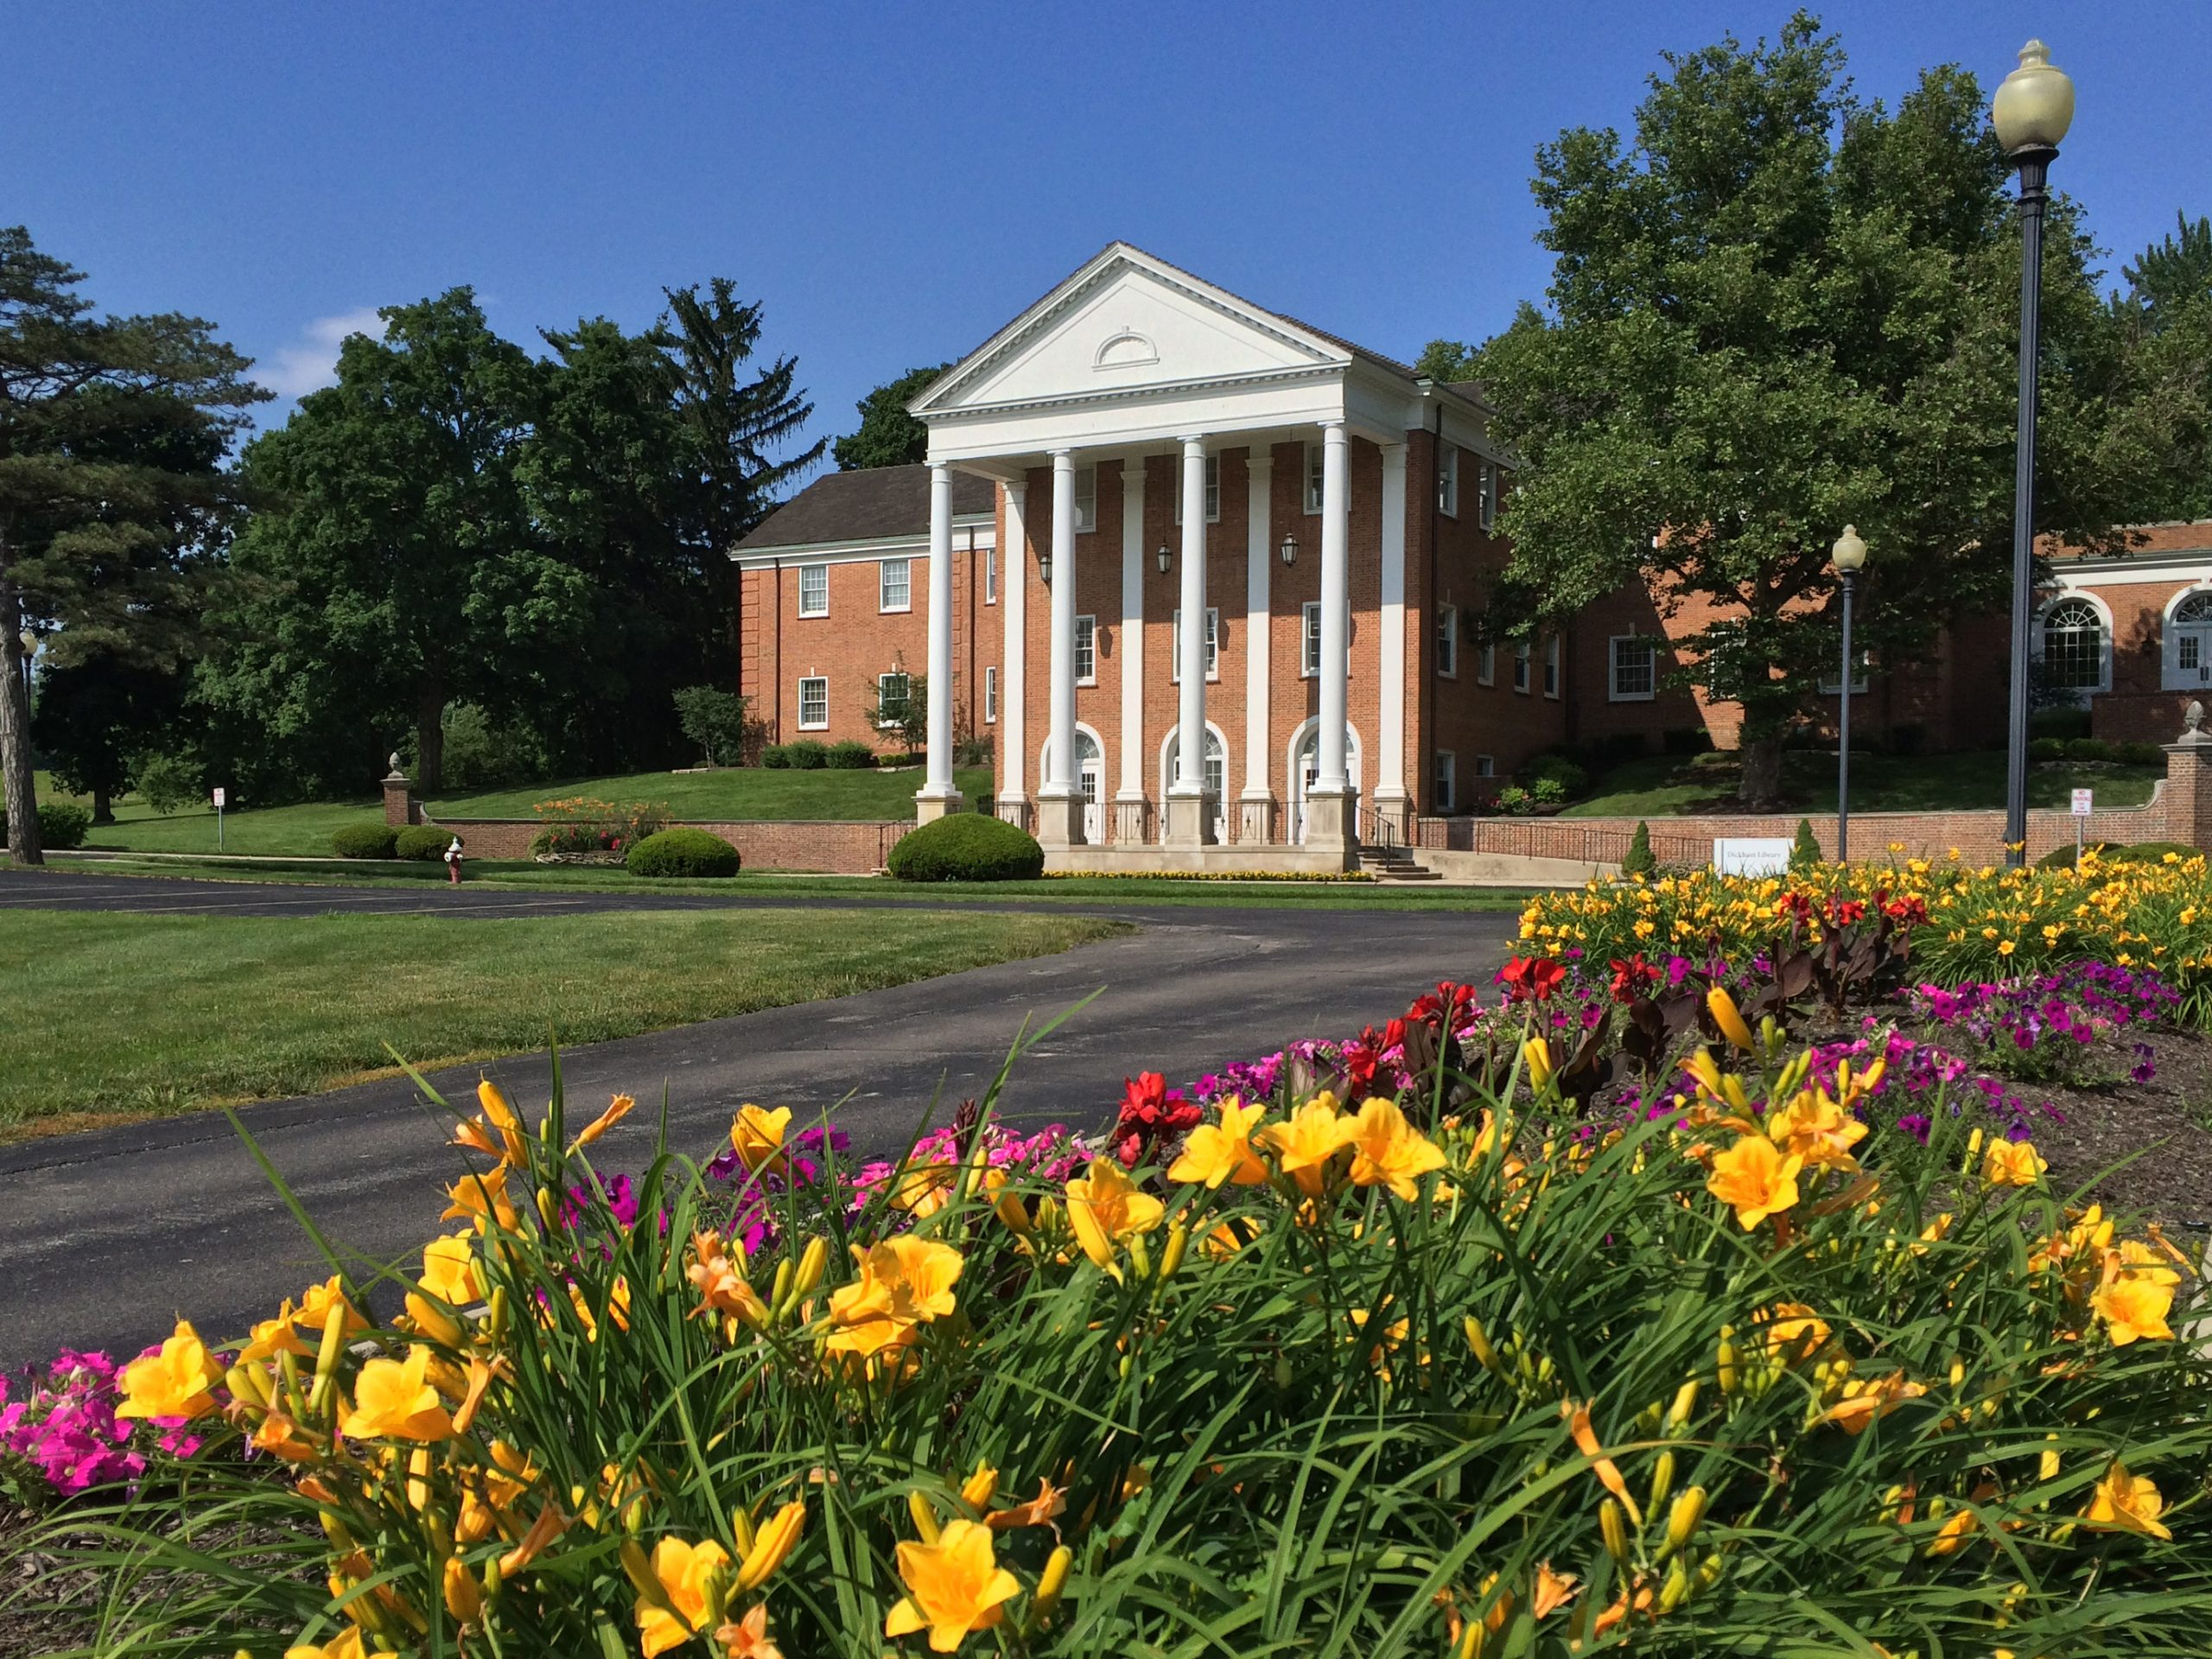 Methodist Theological School in Ohio. Distant academic building surrounded by green trees. A flower garden sits closer to the camera.